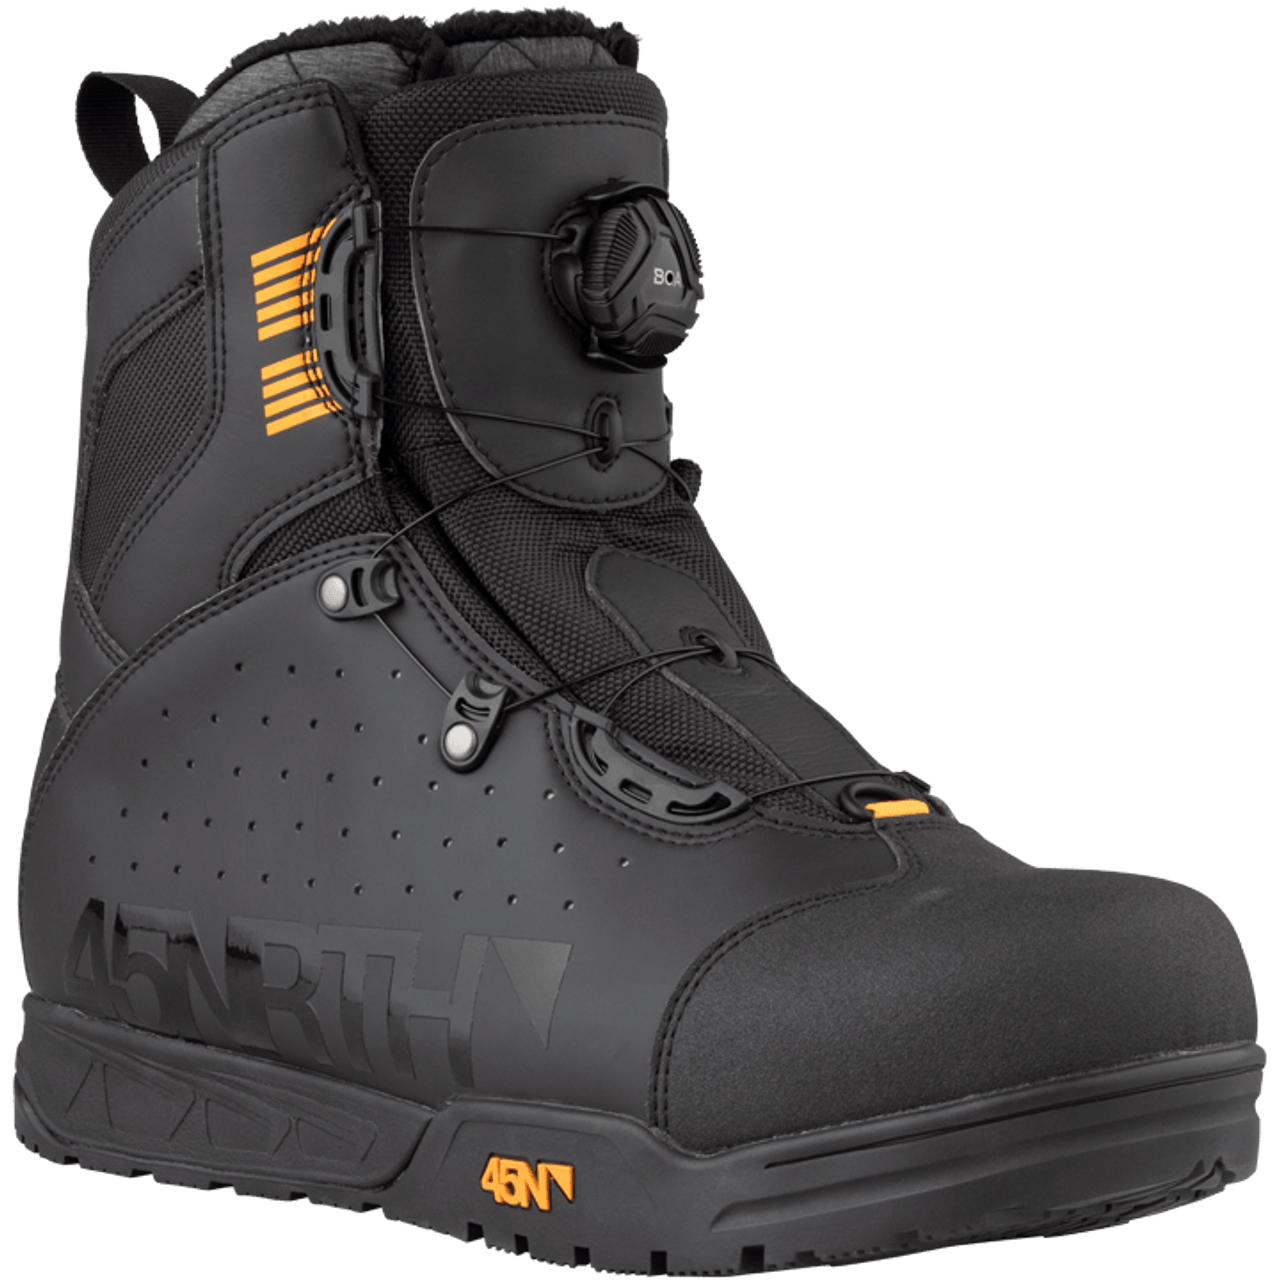 new photos sale famous brand 45NRTH Wolvhammer Boa Winter Cycling Boots